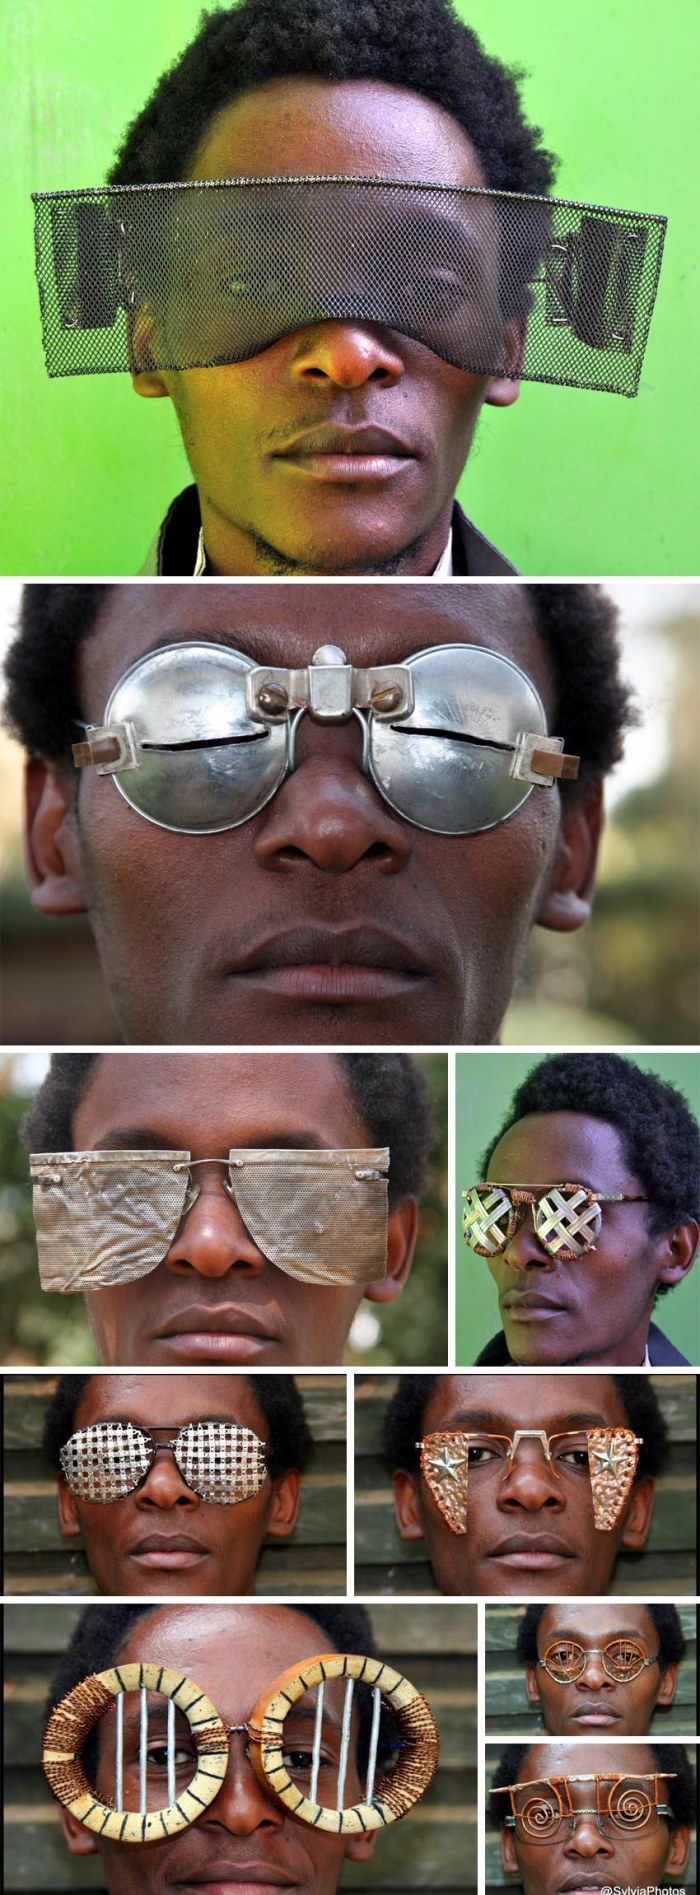 Crazy glasses made from junk and found objects, Contemporary African Art, Cyrus Kabiru at Istanbul Design Biennial 2012